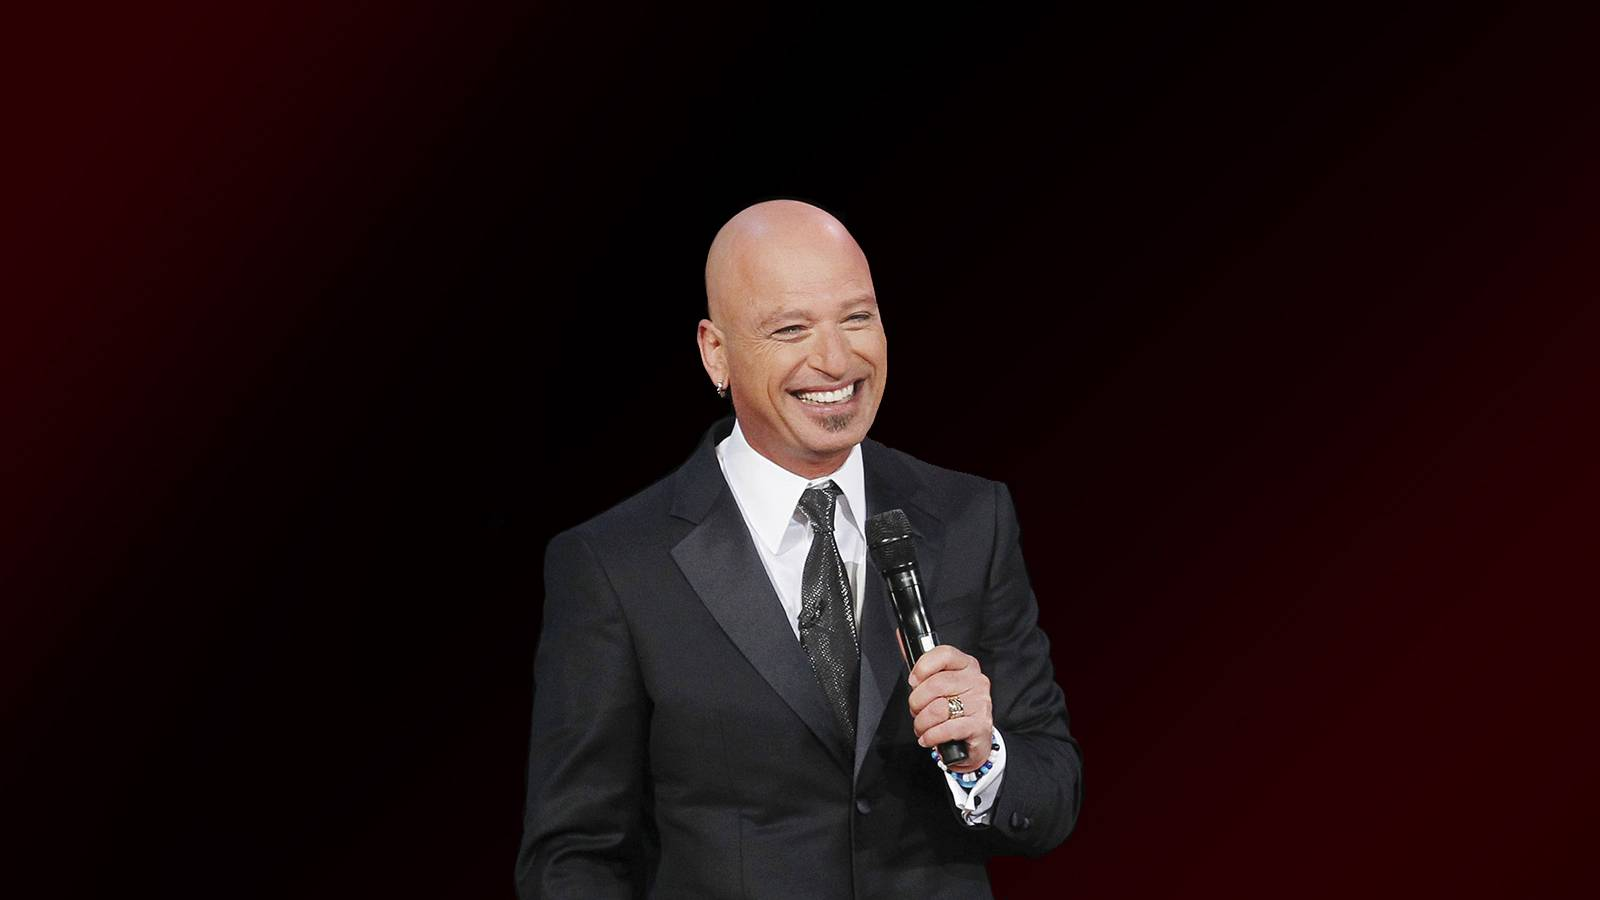 Howie Mandel (21+ Event) (Rescheduled from 6/25/2020)